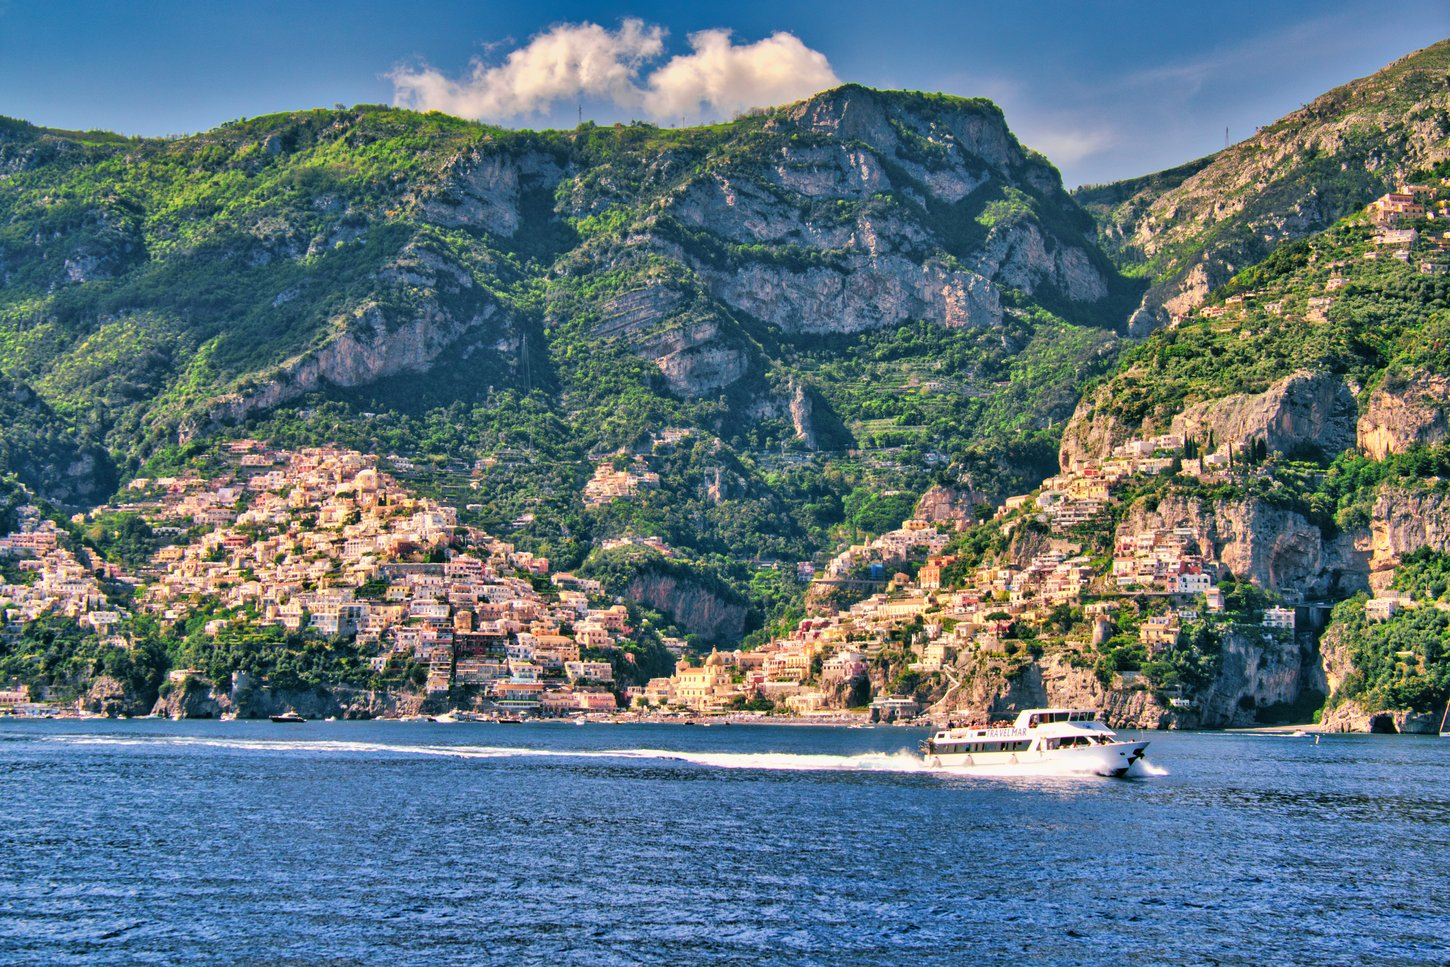 Things to see & do in Positano